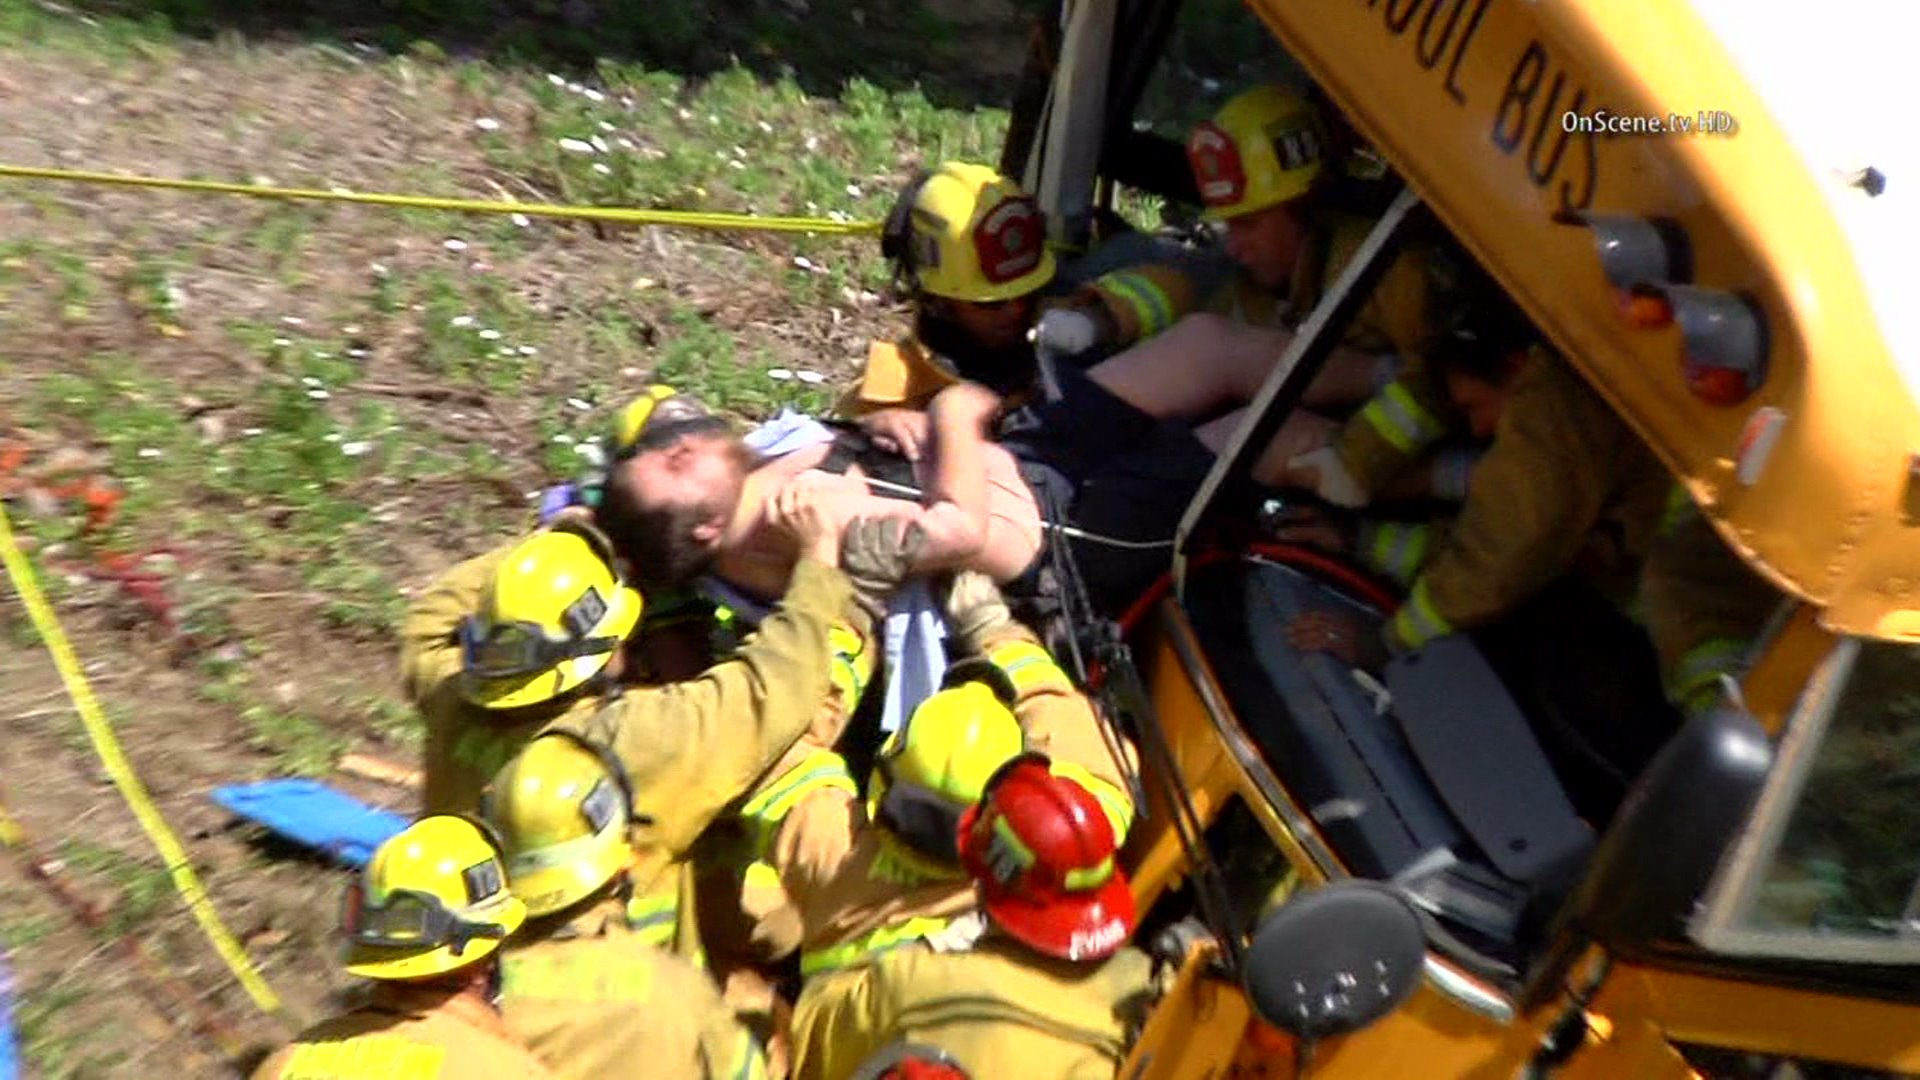 Gerald Rupple was pulled from a school bus that he was driving when it crashed in Anaheim Hills on April 24, 2014. (Credit: OnScene TV)